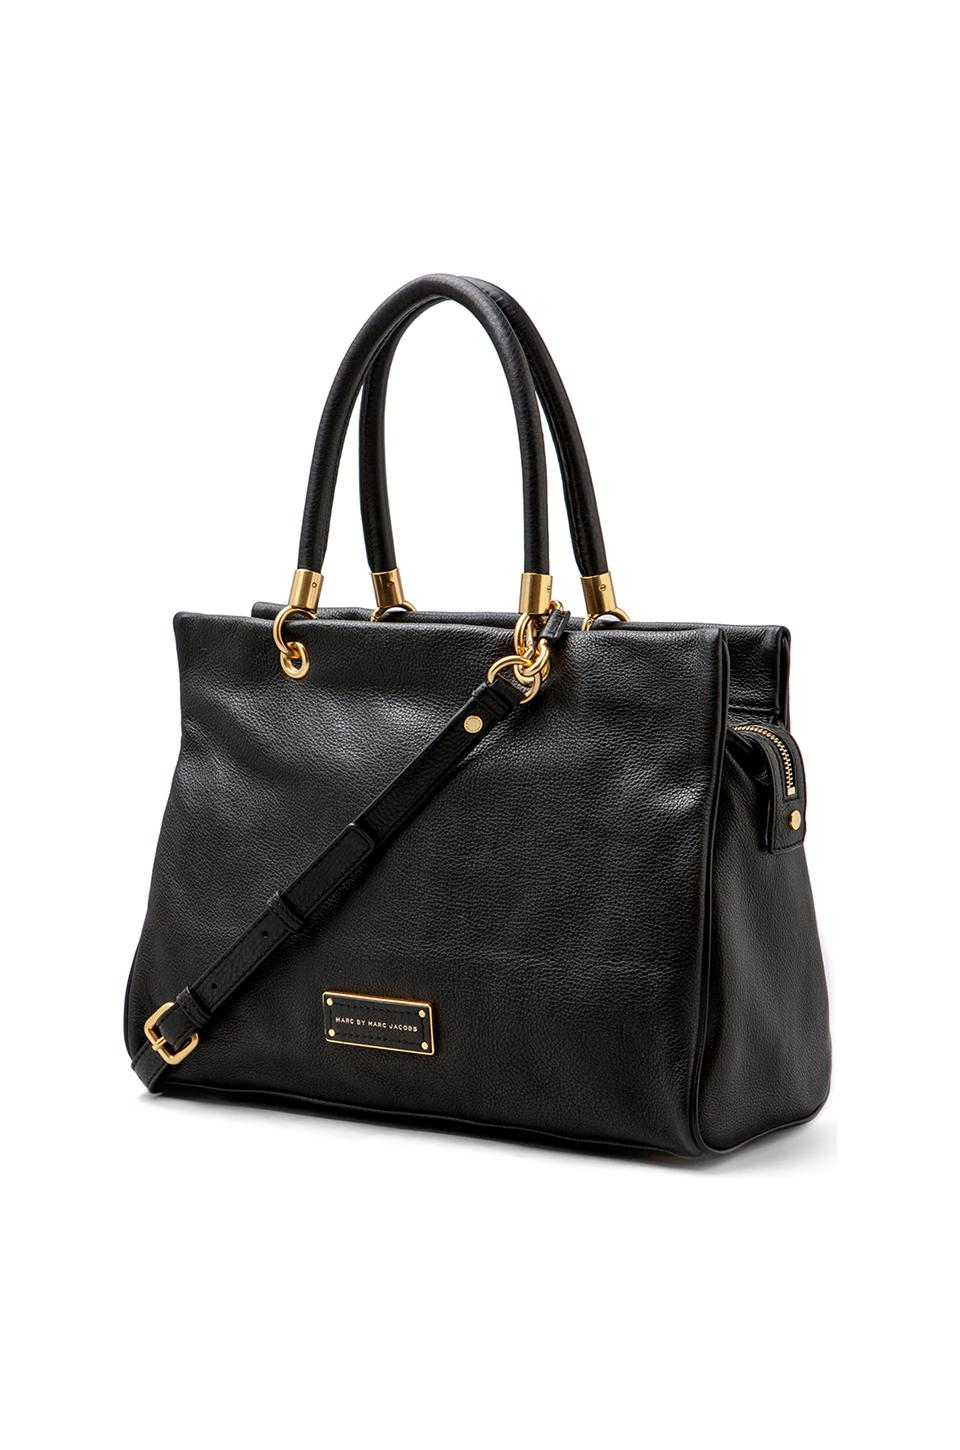 Marc by Marc Jacobs Too Hot to Handle Tote in Black